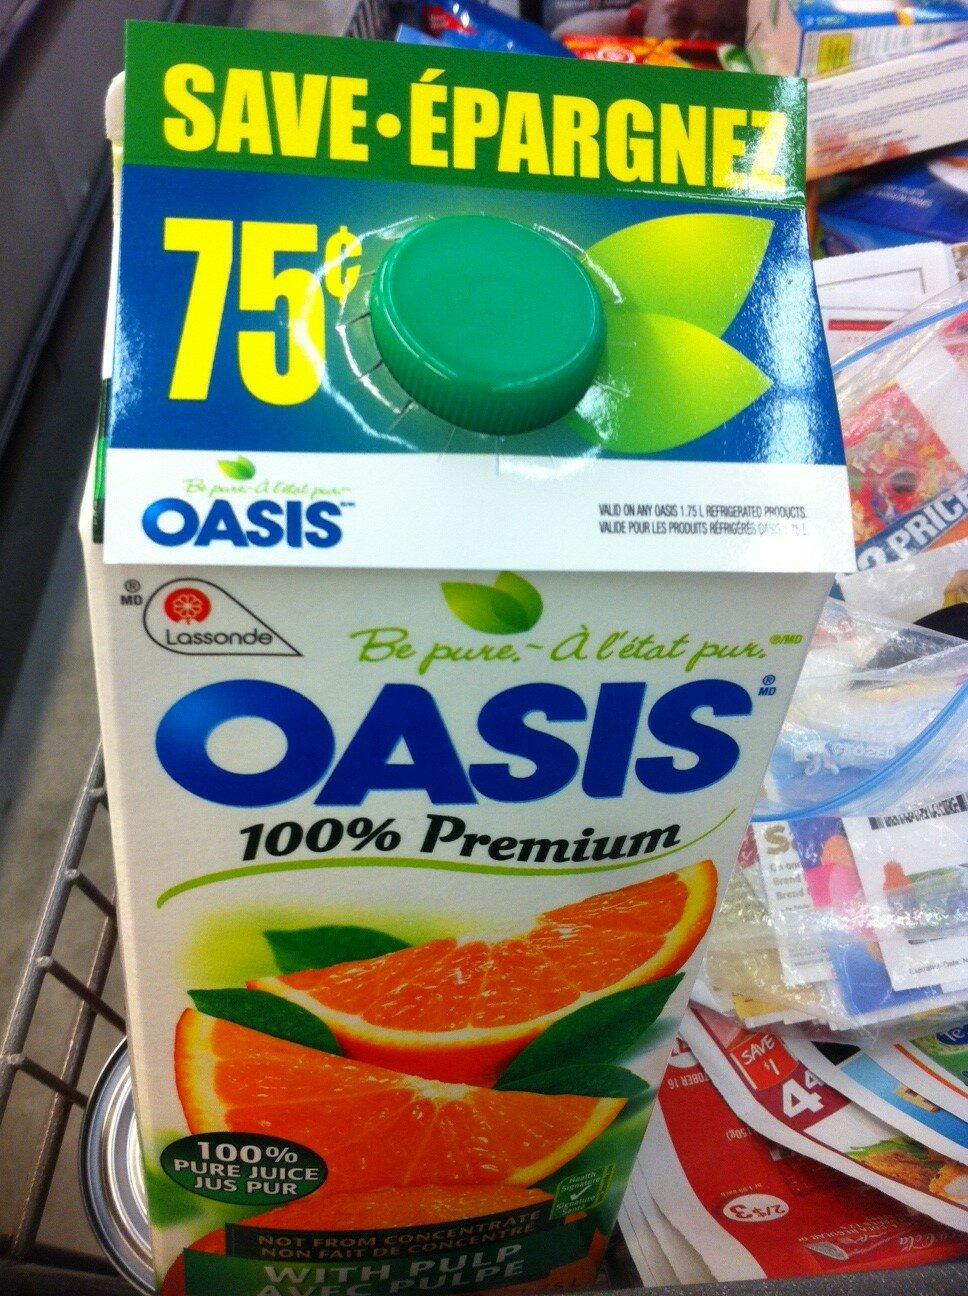 *NEW* .75 cents off Oasis Carton Juice Spotted *